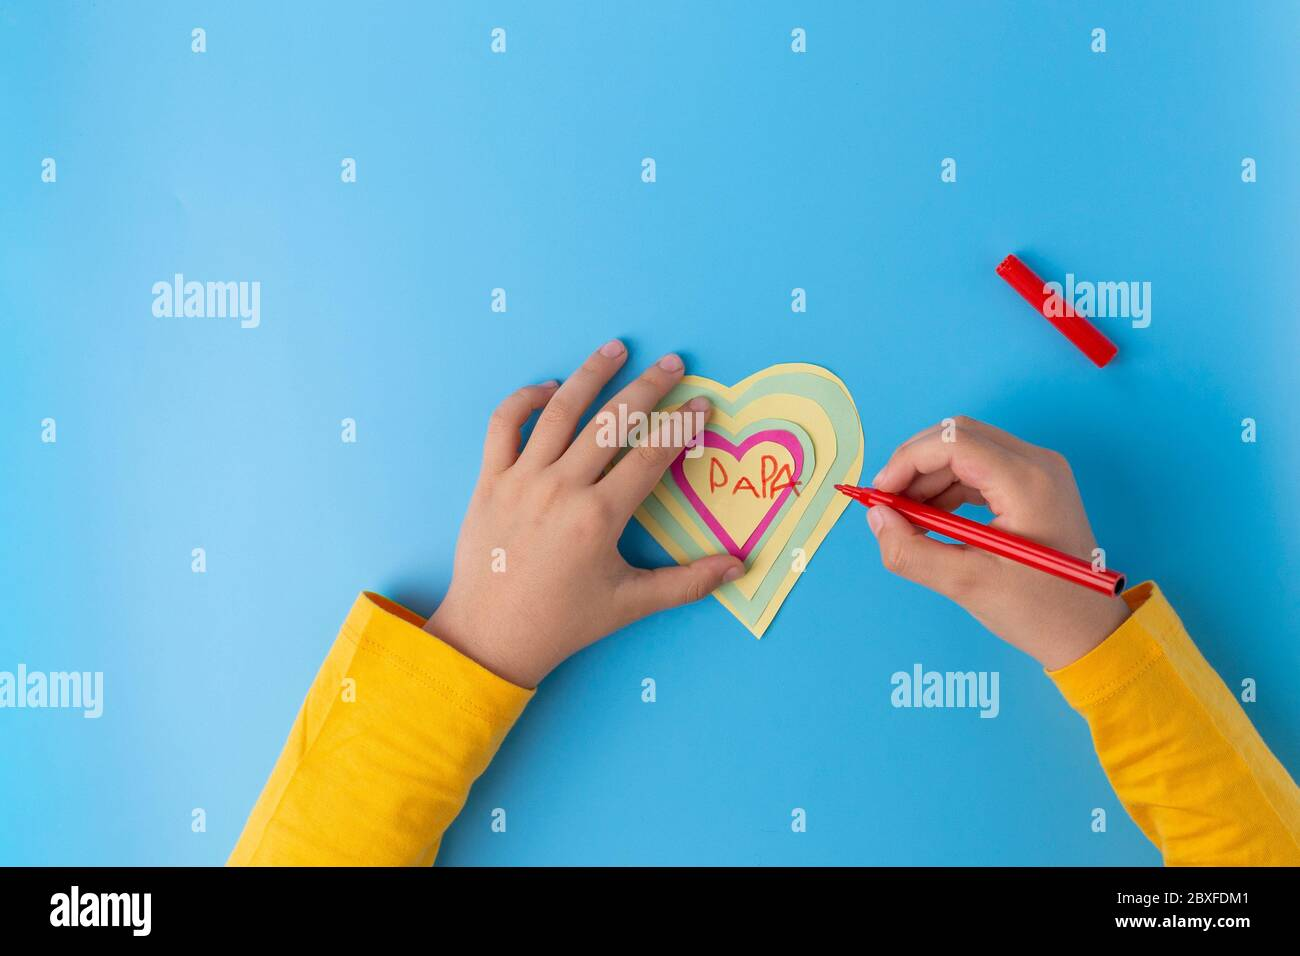 paper craft fathers day card, kids made paper kids hand drowing heart on card Stock Photo